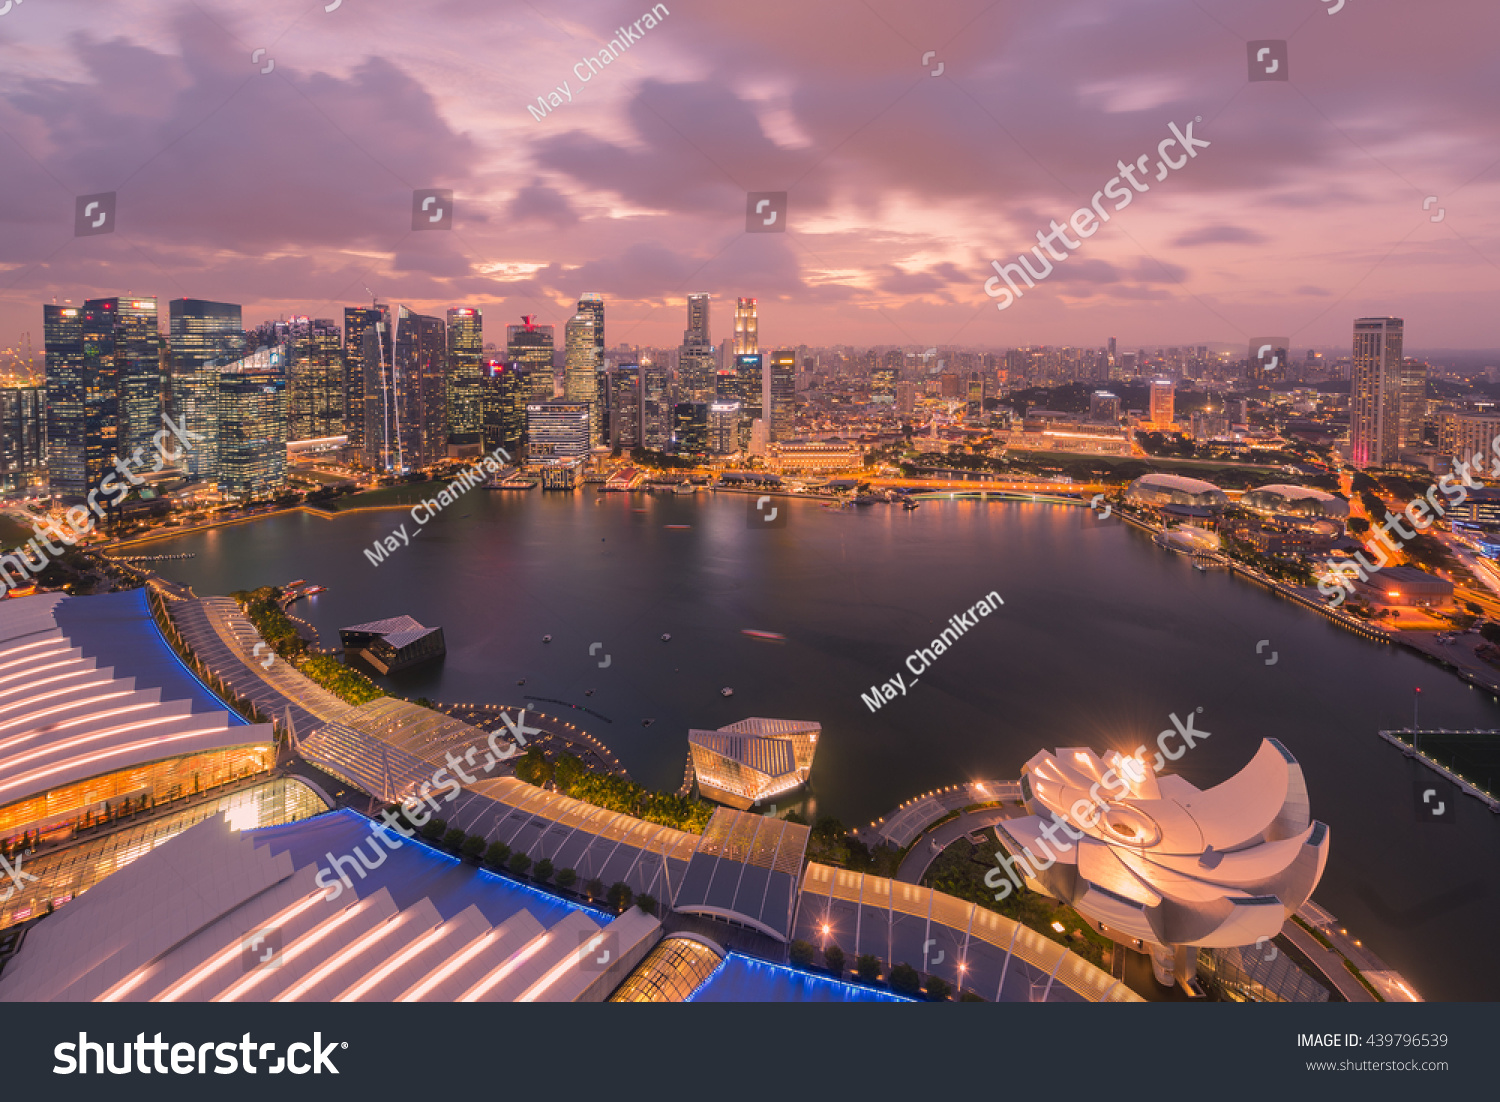 SINGAPORE, FEBRUARY 26 2016 : Singapore cityscape of the financial district, Singapore on February 26 2016 #439796539